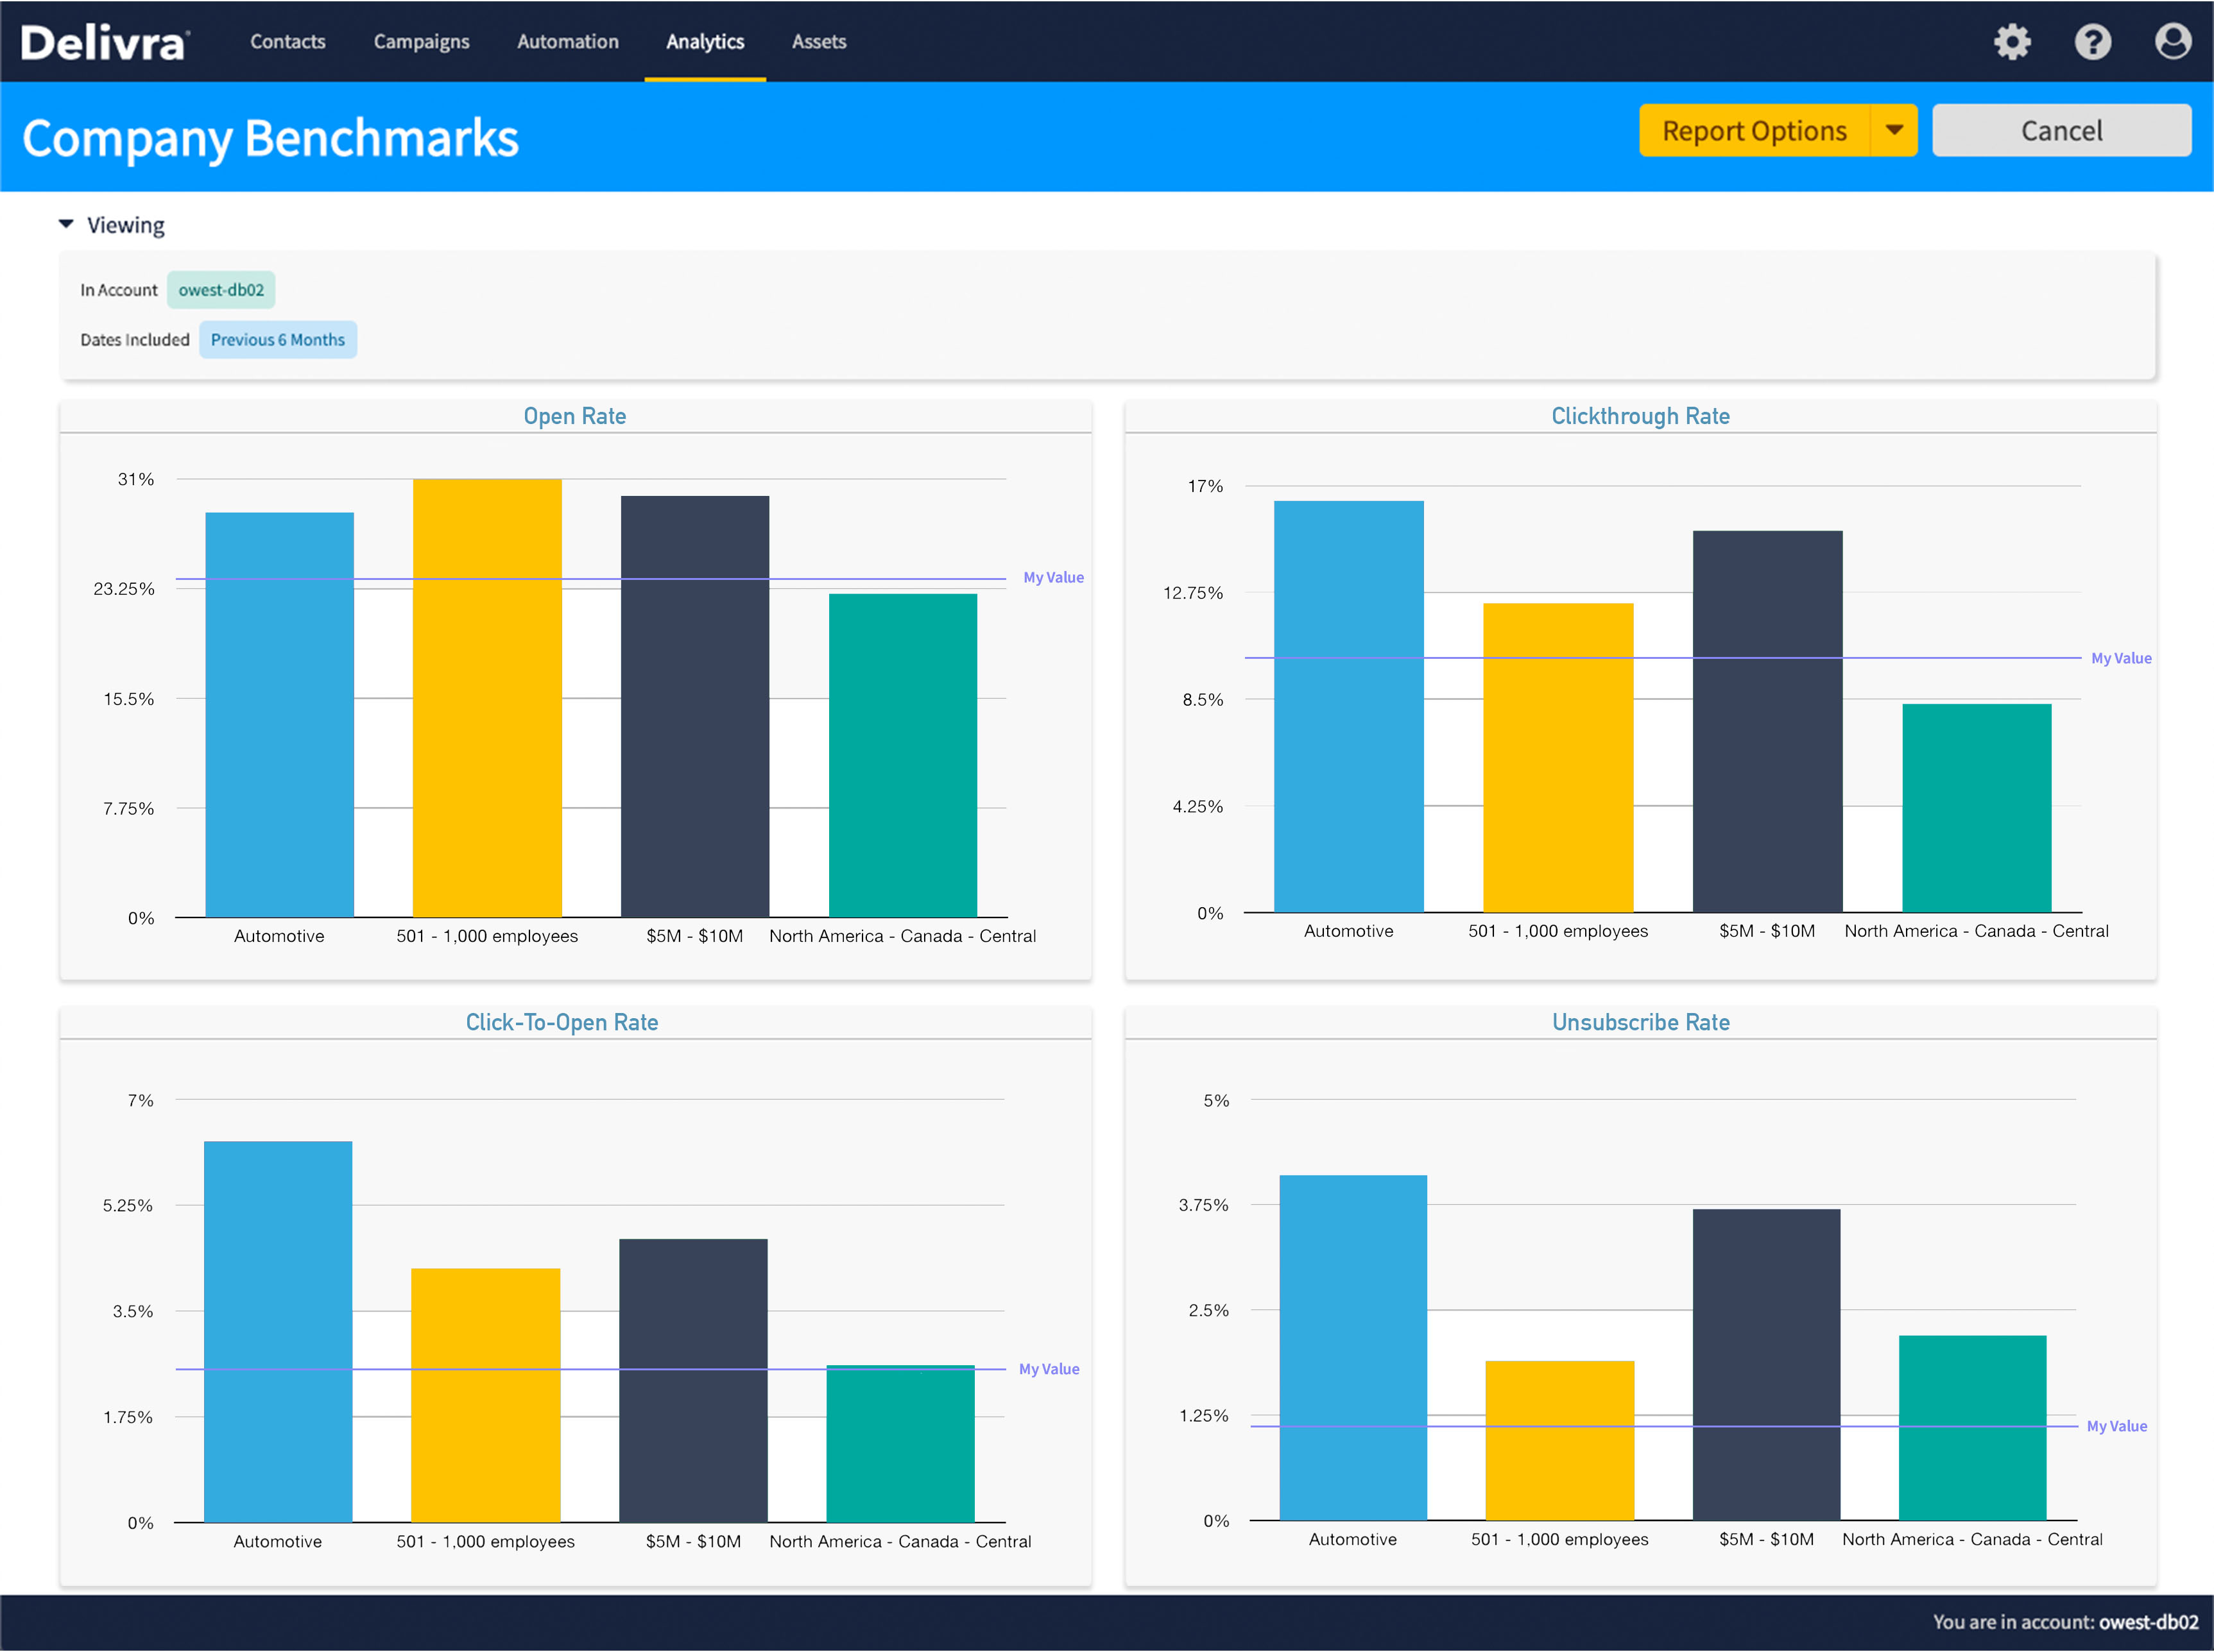 Delivra shows comparative email benchmarks within its platform